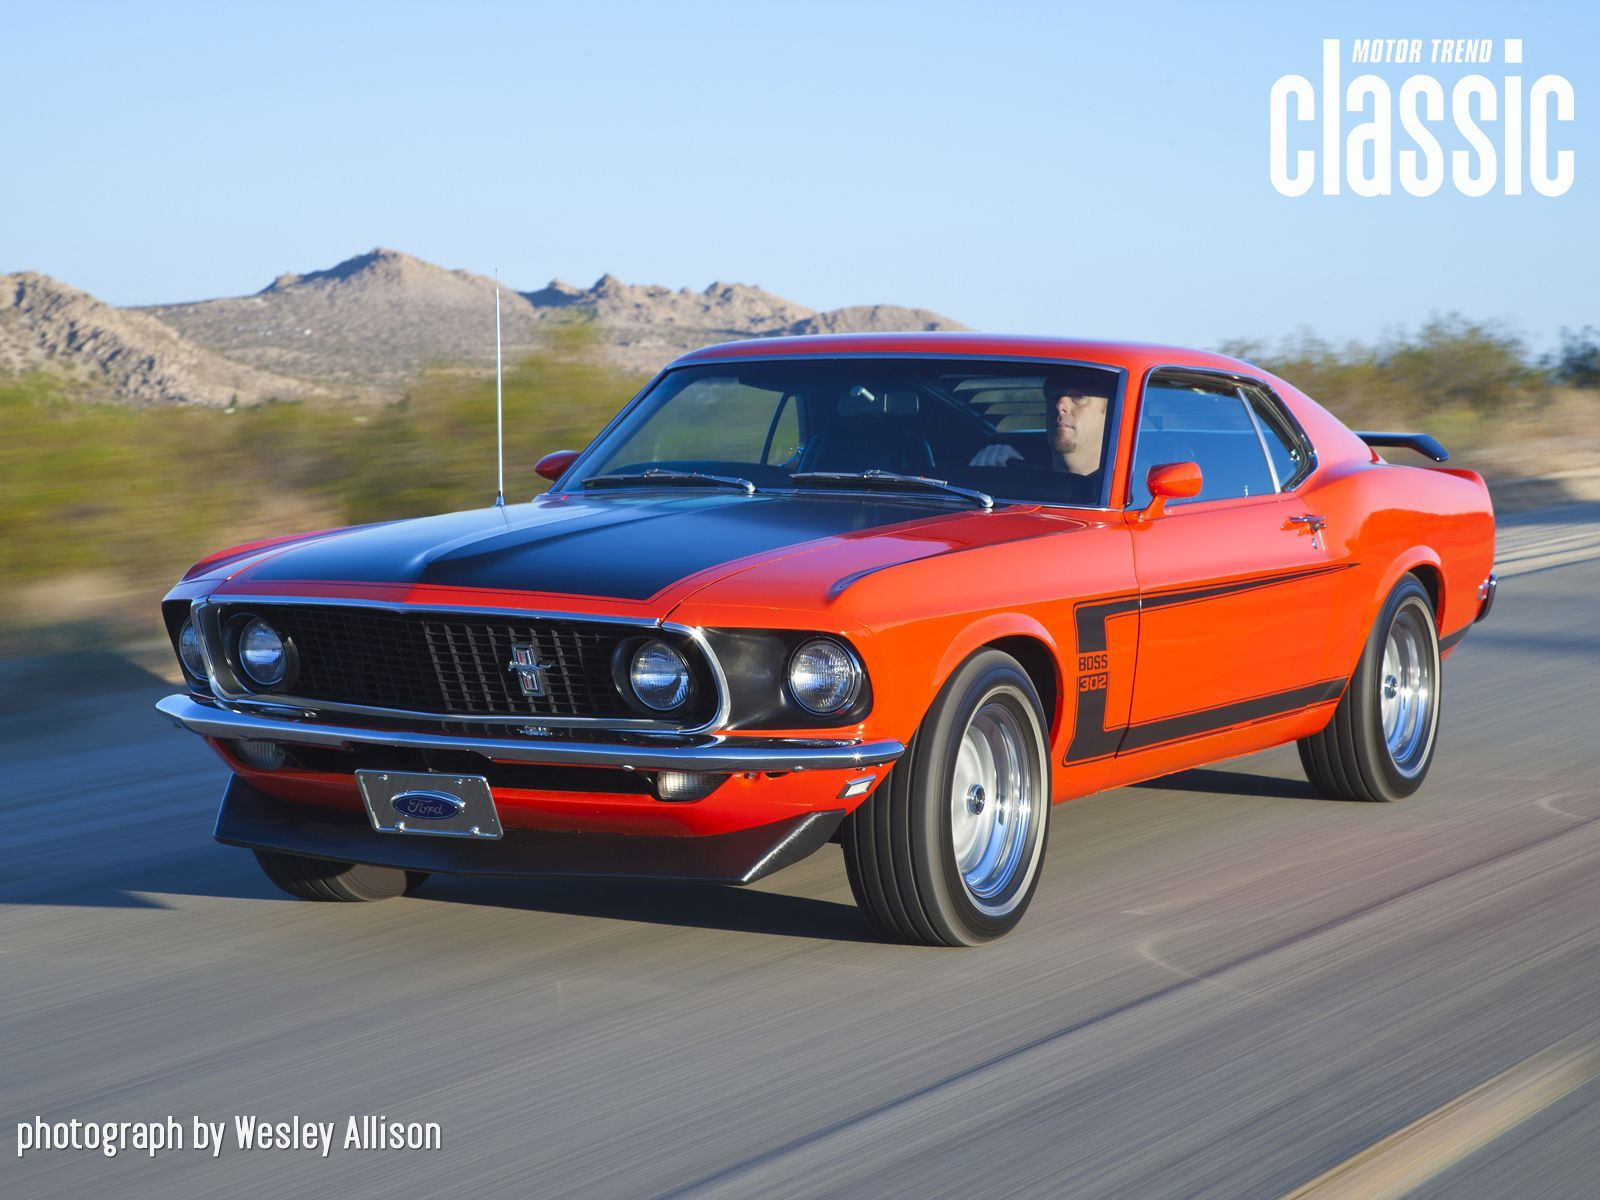 1969 ford mustang boss 302 front view in motion wallpaper 1 600